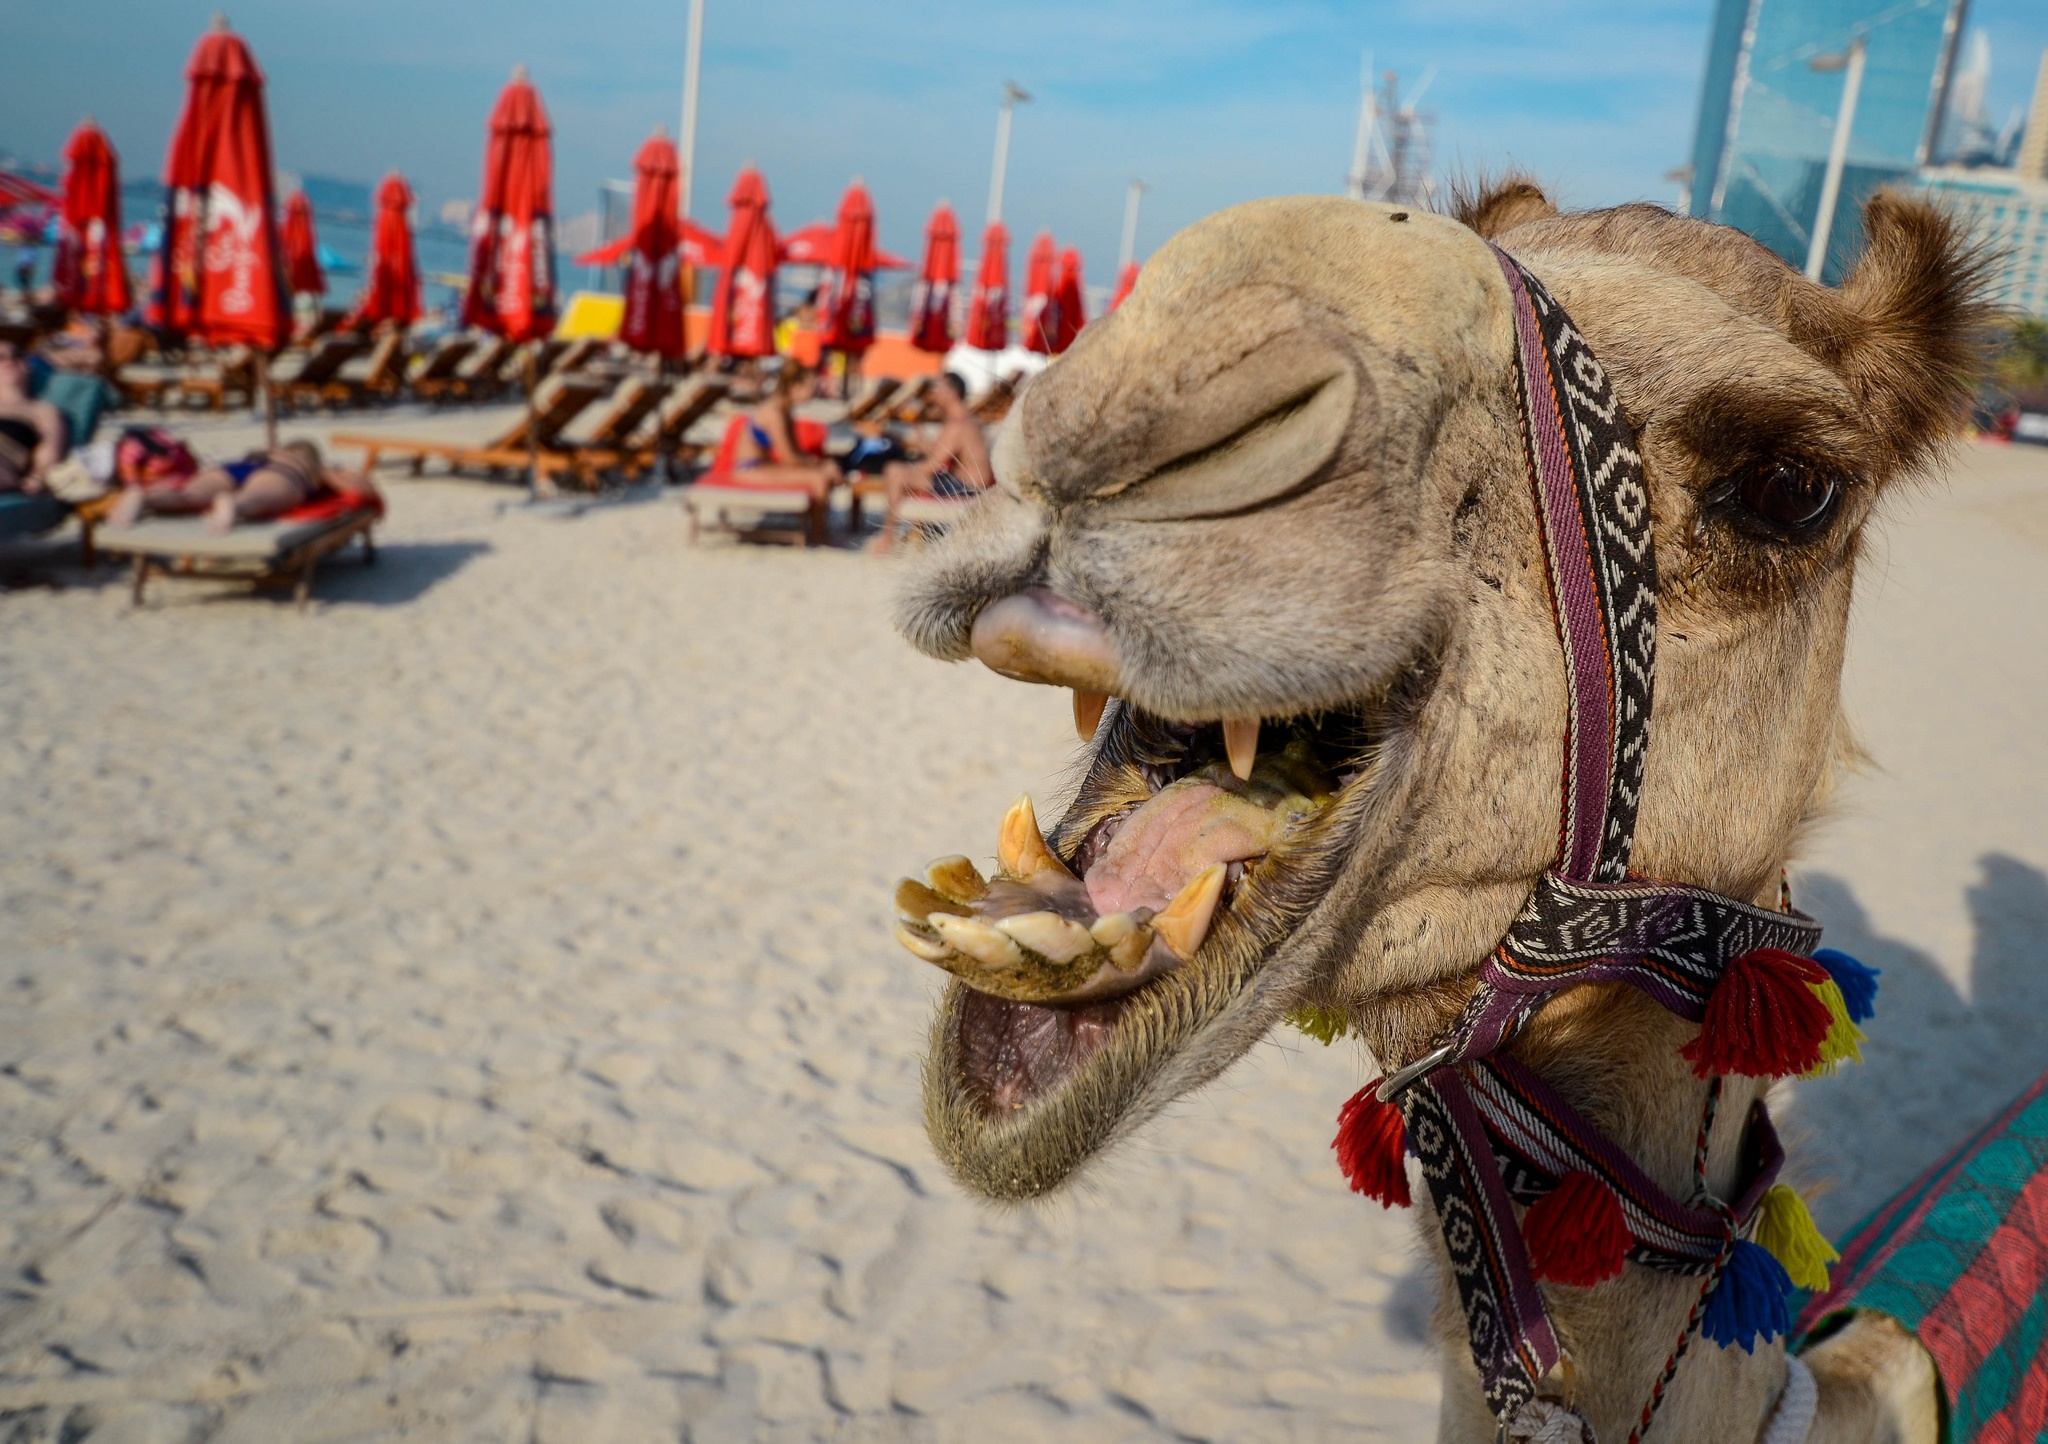 camel on the beach in UAE